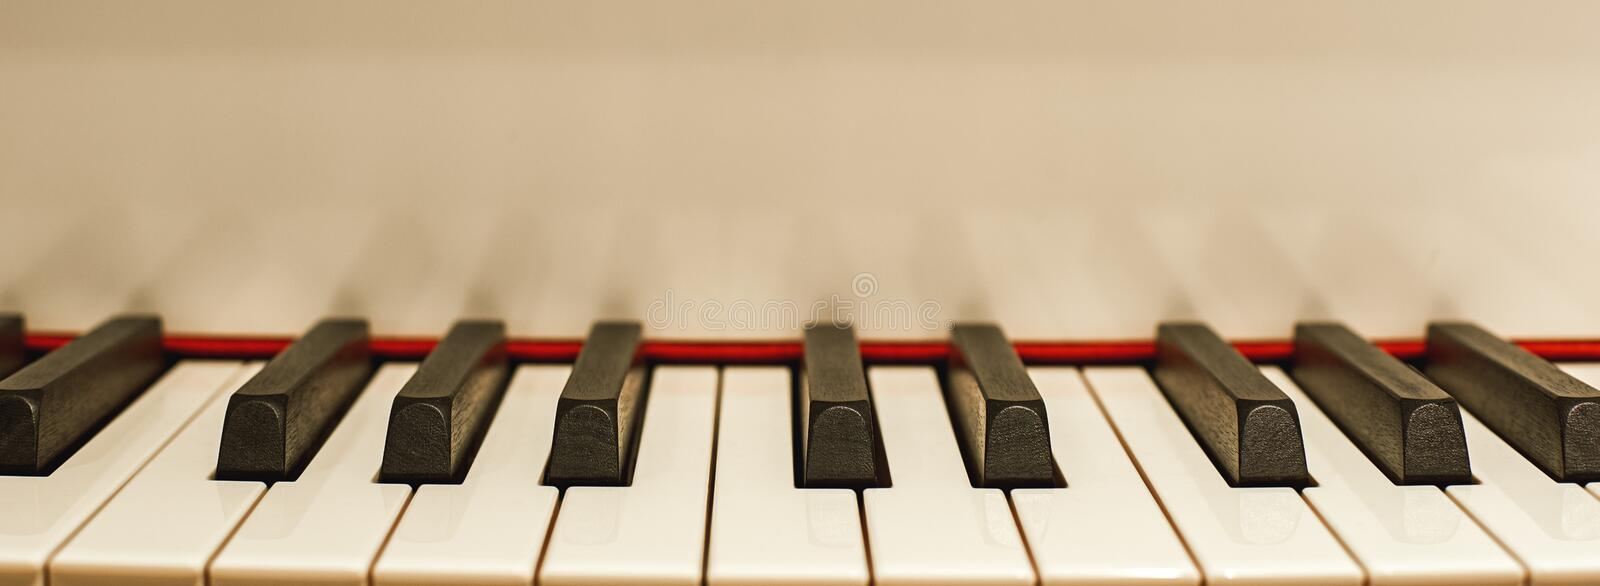 The most melodious musical instrument. Close up view of black and white piano keys. Music concept royalty free stock image